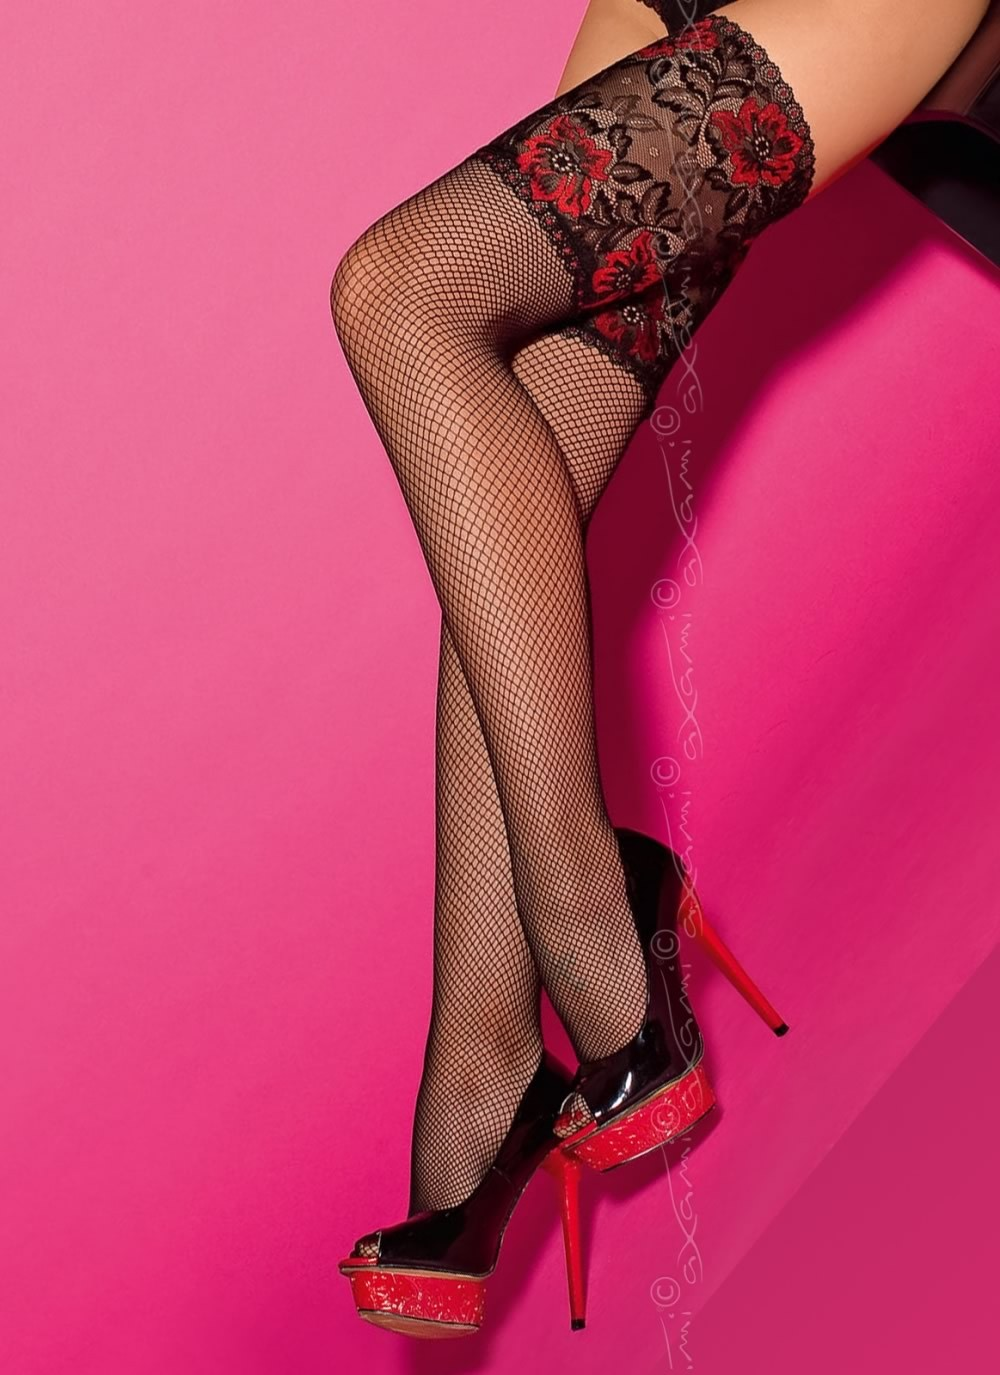 Marea Fishnet Stocking